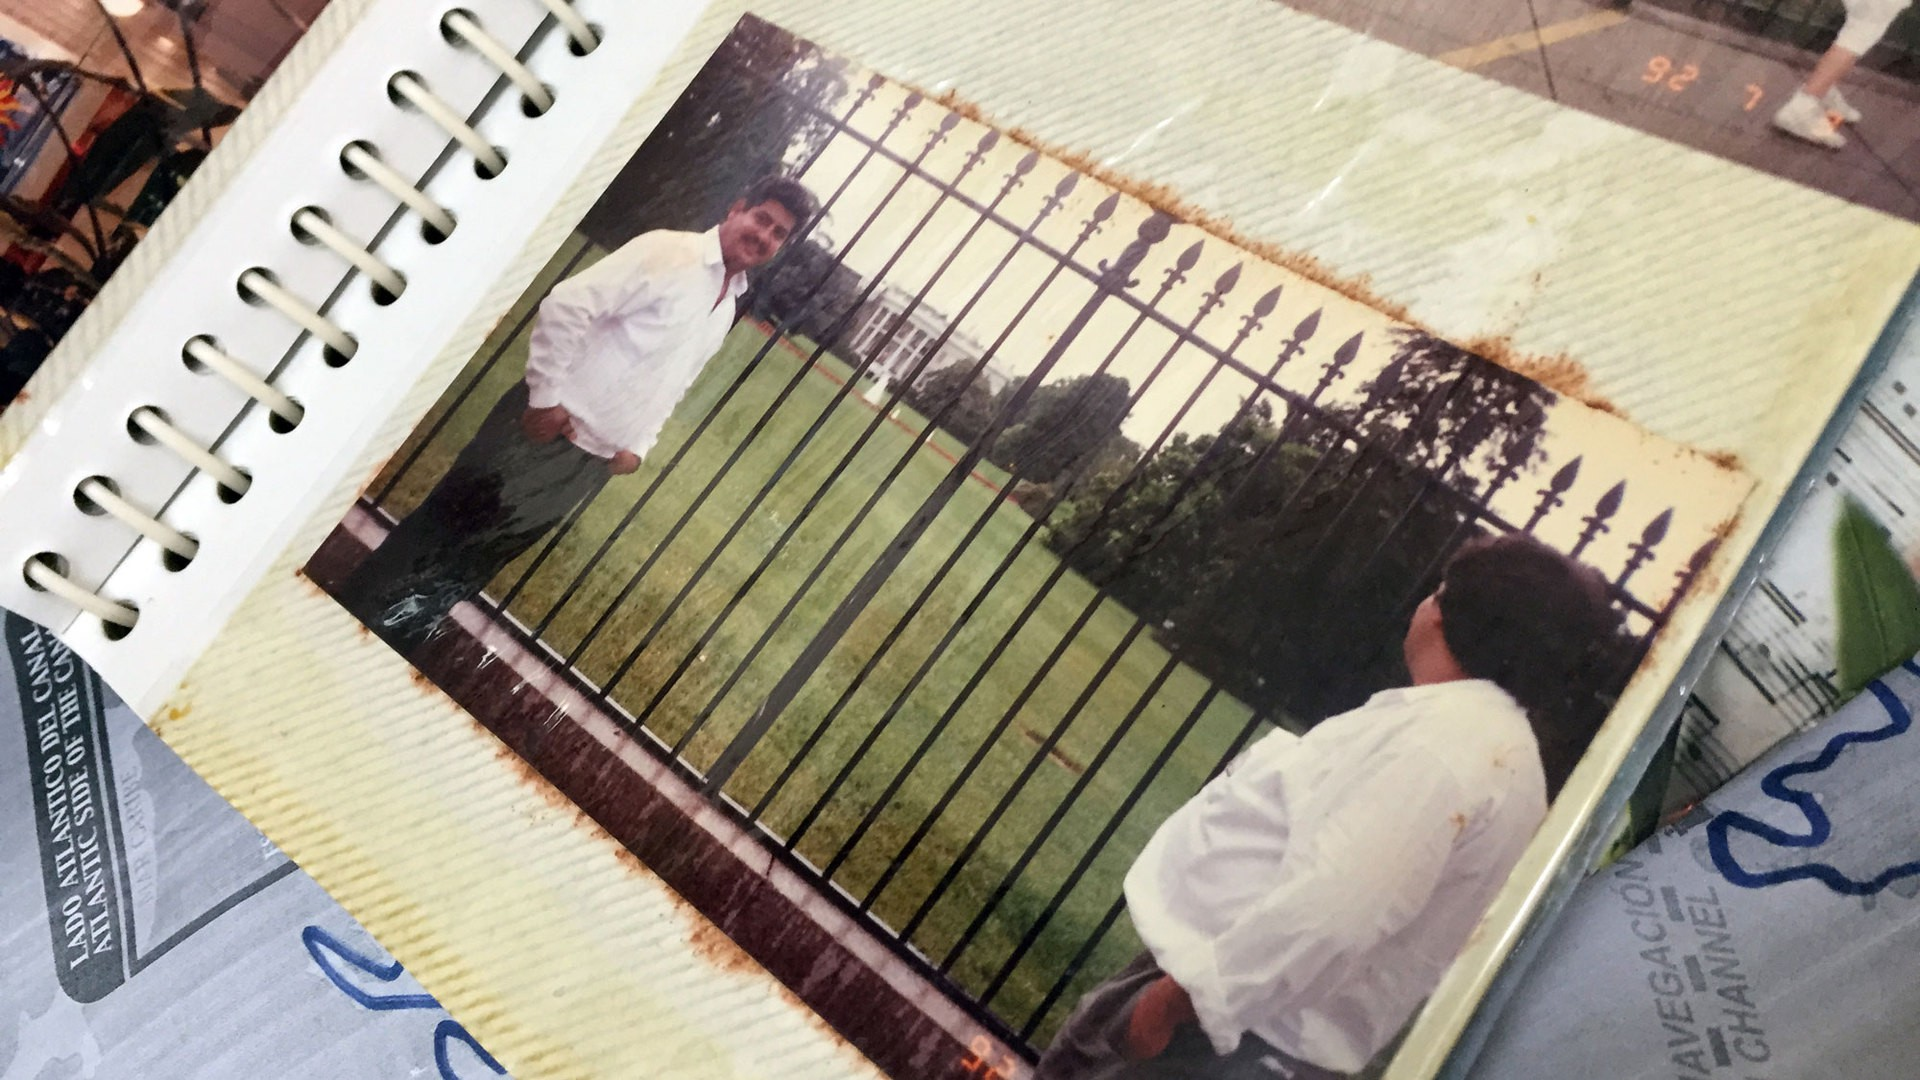 A photo album contains a picture of Ortega in front of the U.S. White House. (Photo by Miguel Otárola)